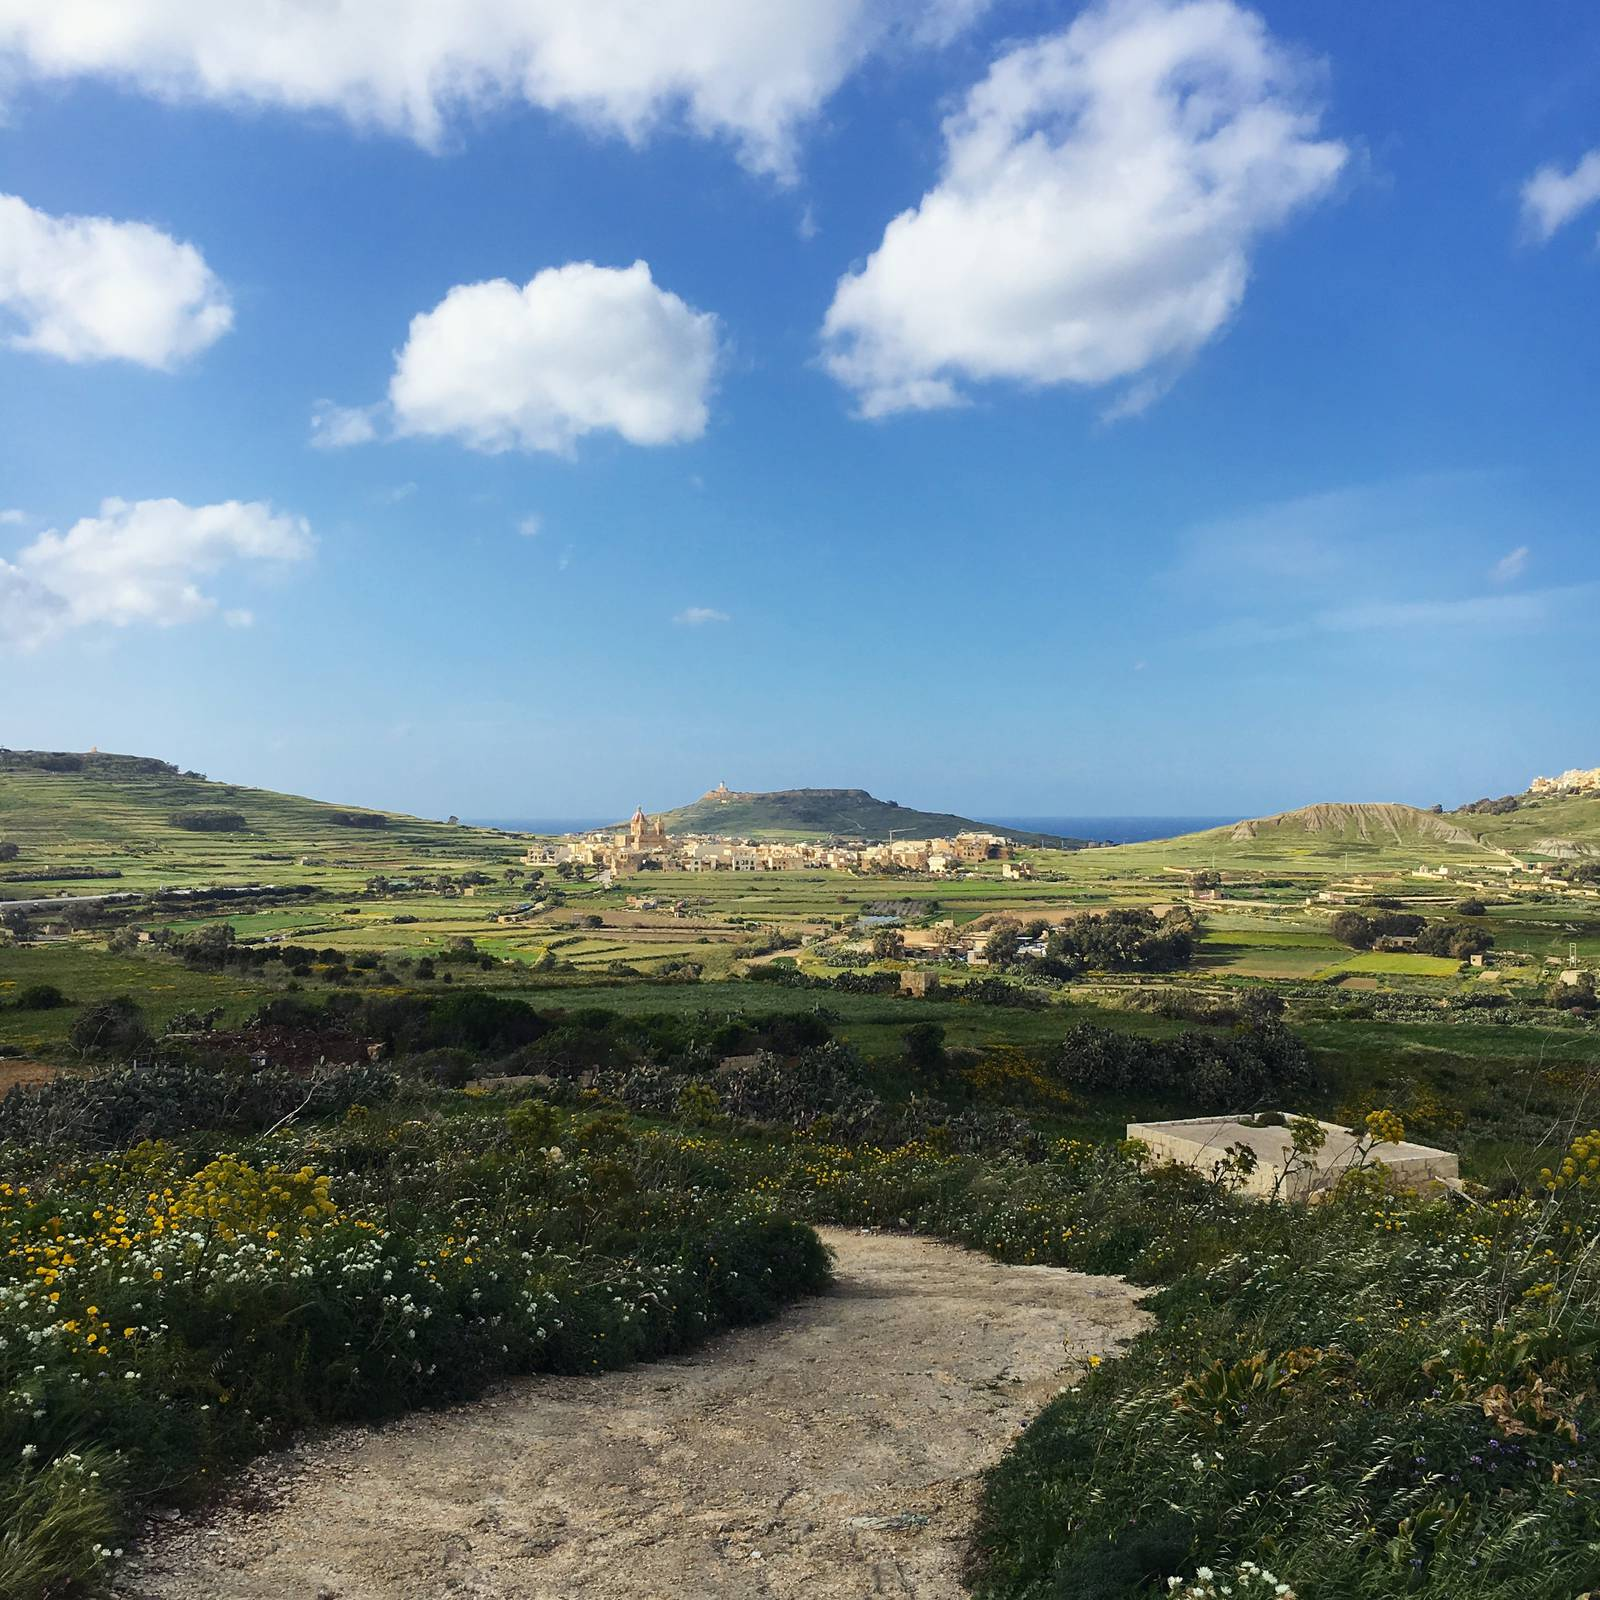 Maltese countryside outside of Victoria in Gozo